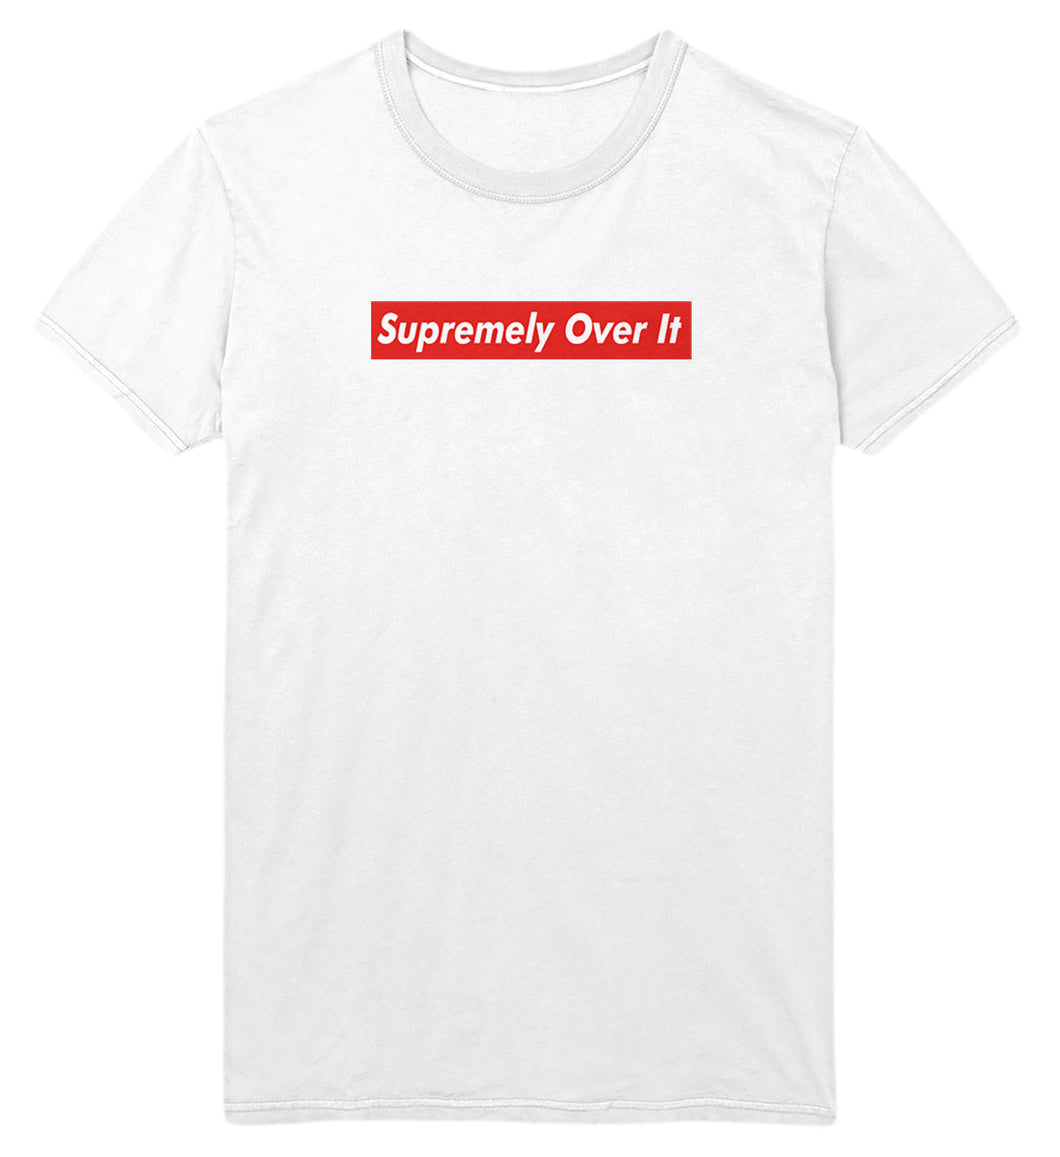 SUPREMELY OVER IT (T-Shirt)